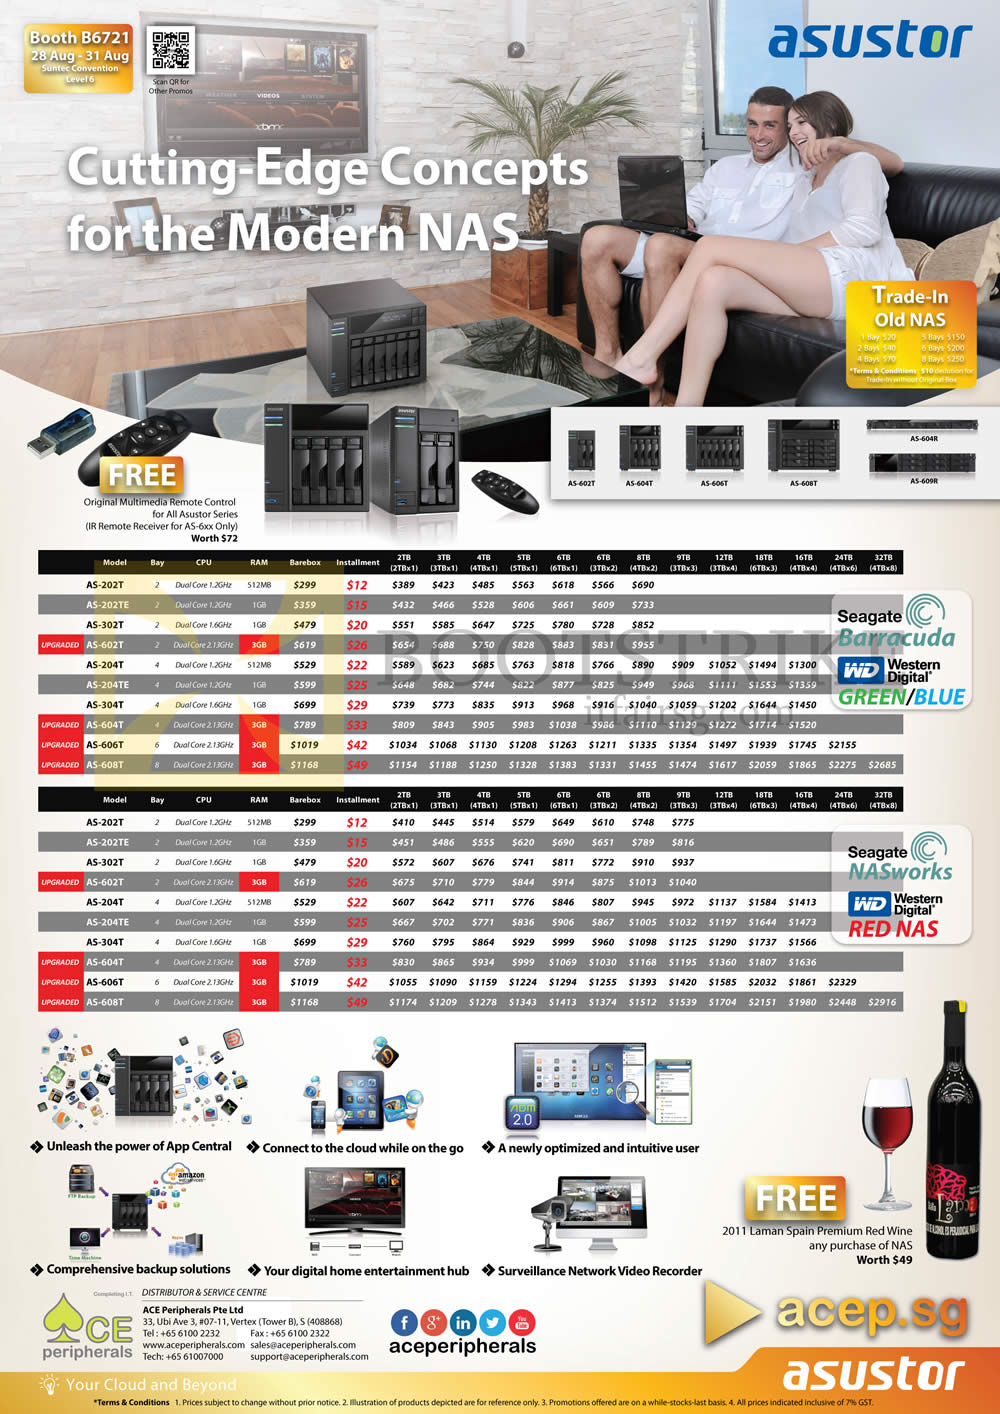 COMEX 2014 price list image brochure of ACE Peripherals NAS Asustor Trade-in AS 202T, AS 202TE, AS 204T, AS 204TE, AS 302T, AS 304T, AS 602T, AS 604T, AS 606T, AS 608T, AS 604RS, AS 609RS